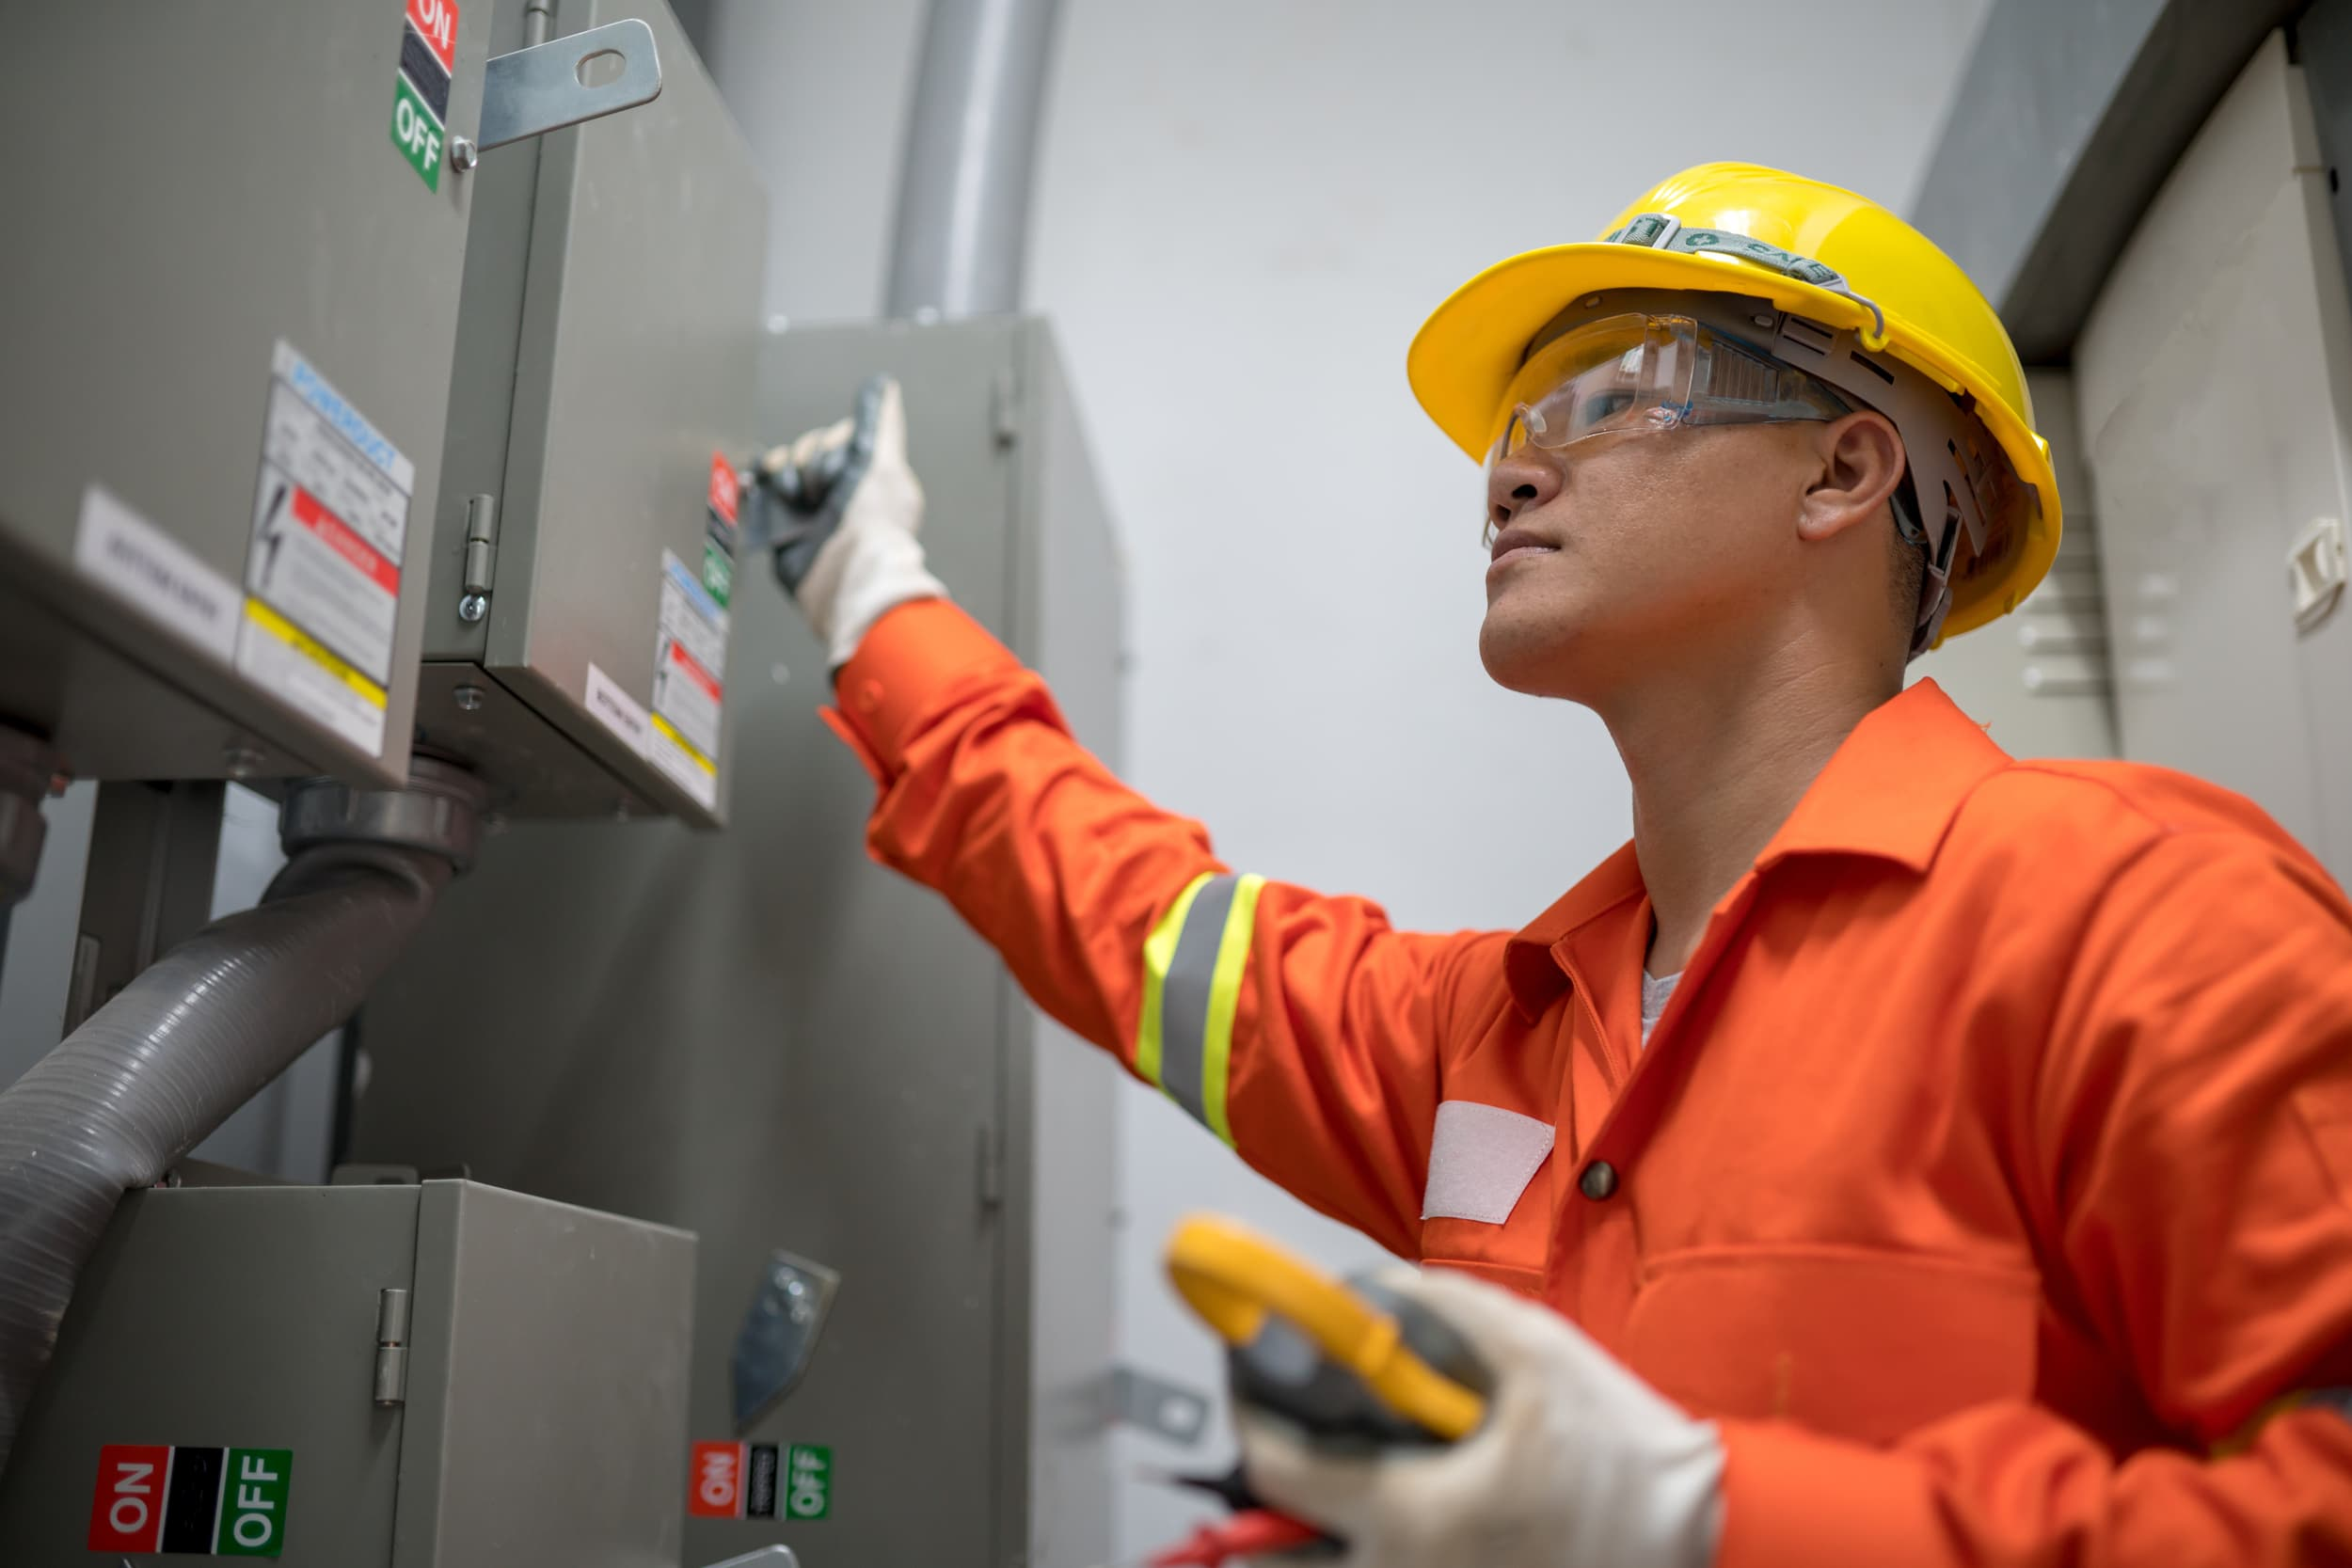 Compliance Training Online Canada Electrical Safety course